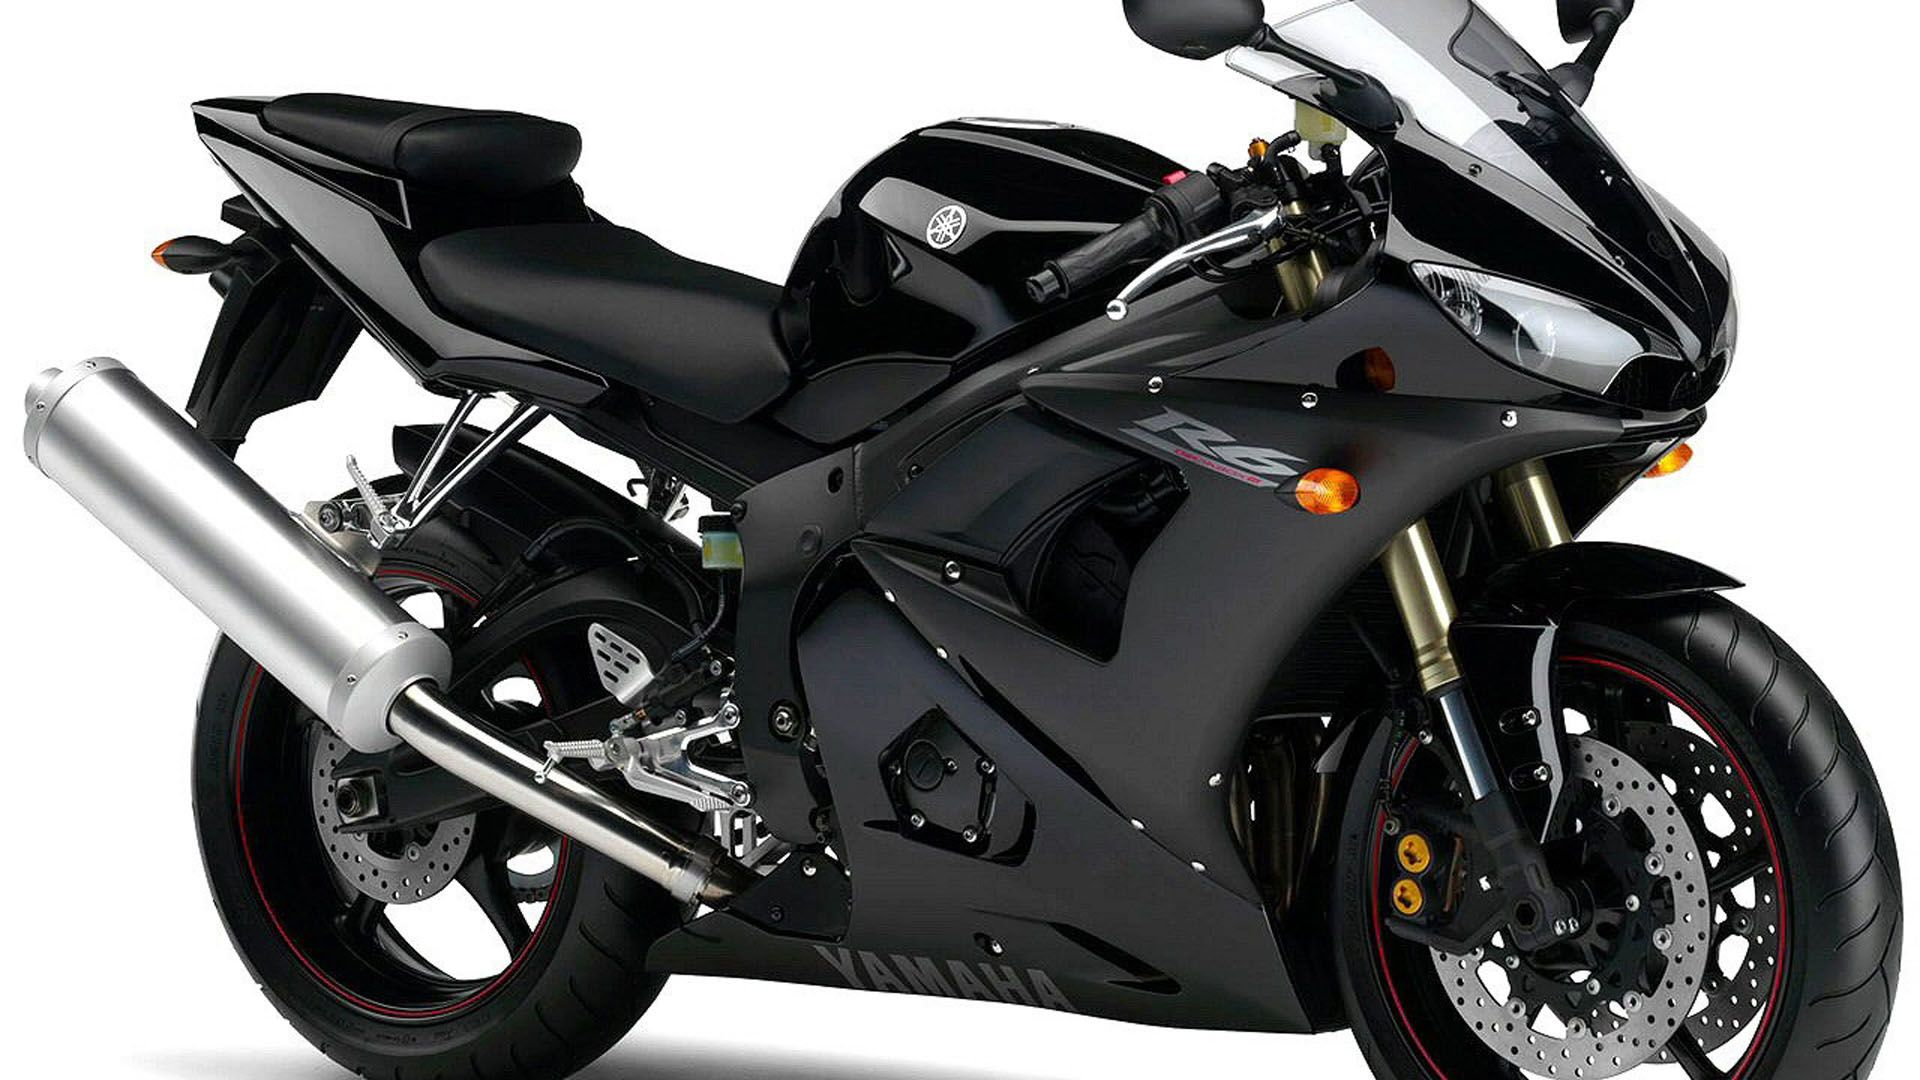 Yamaha R6 Sports Bike 1080p Hd Wallpaper Sport Bikes Yamaha Bikes Yamaha R6